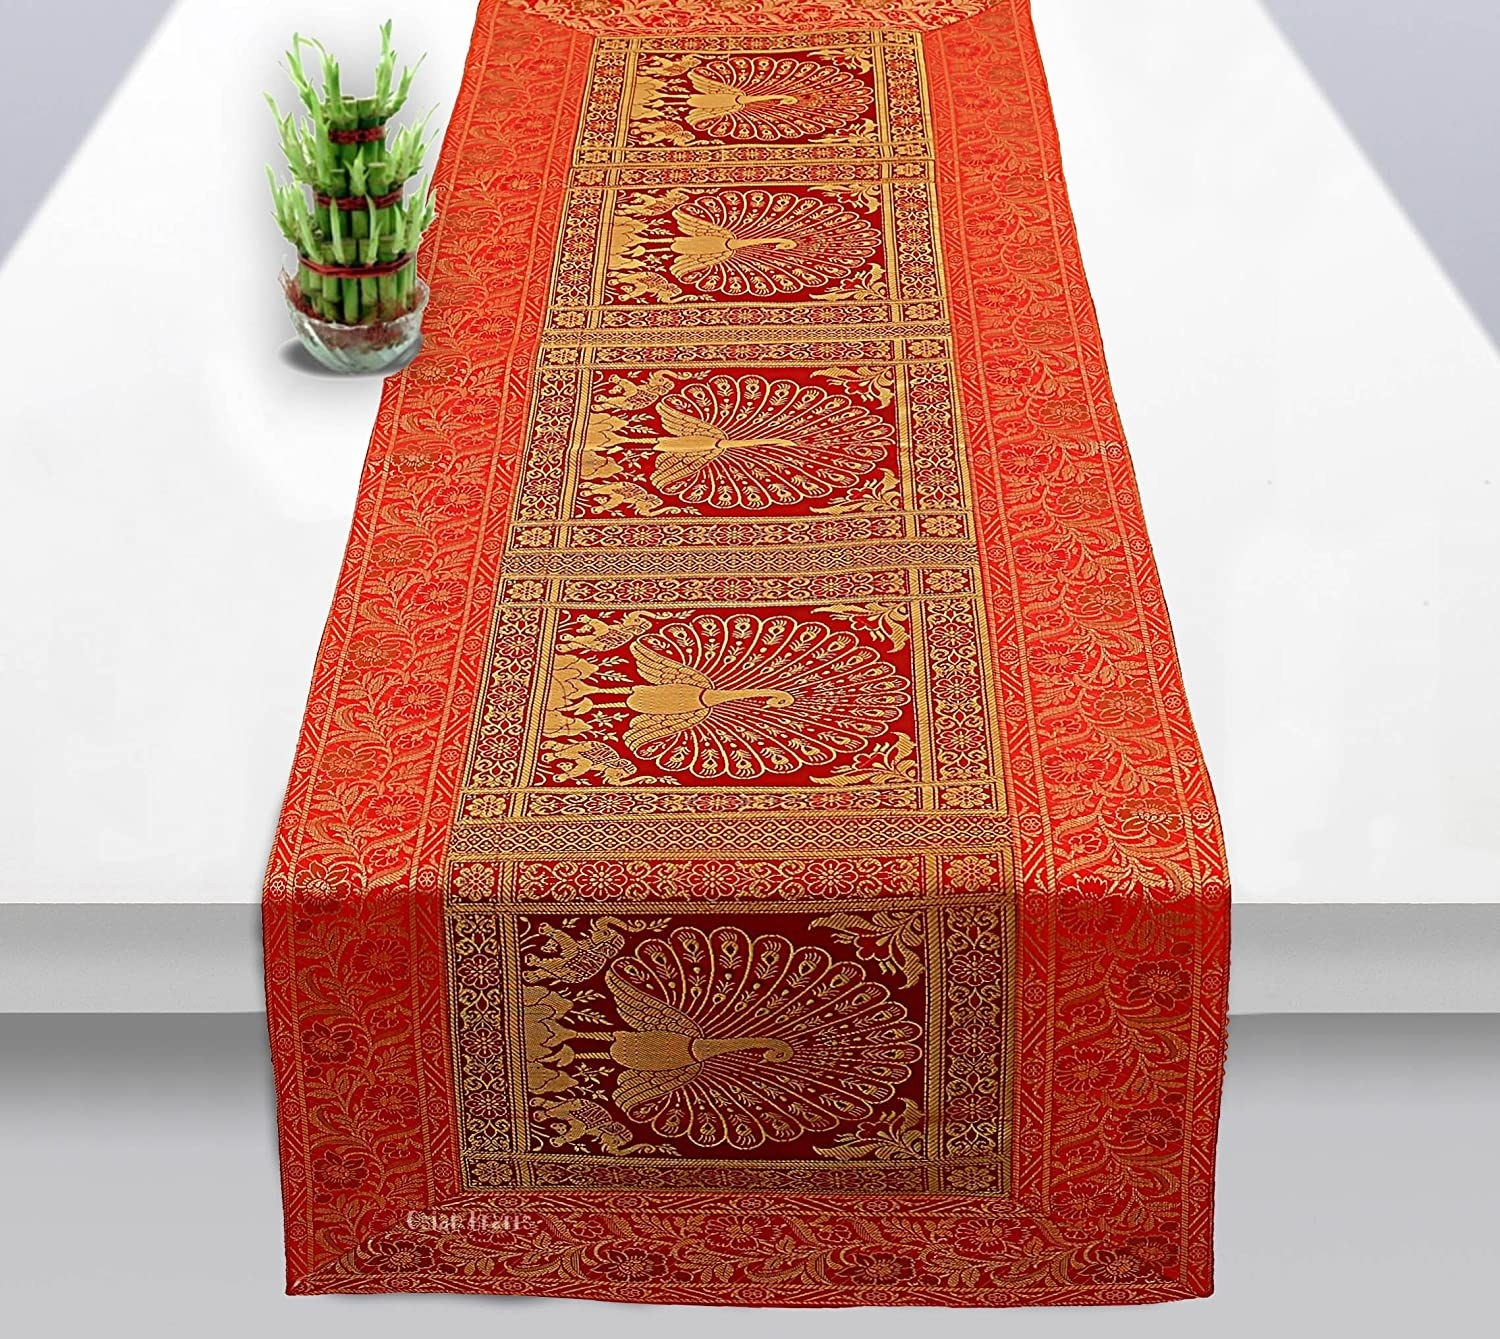 A red and gold table runner